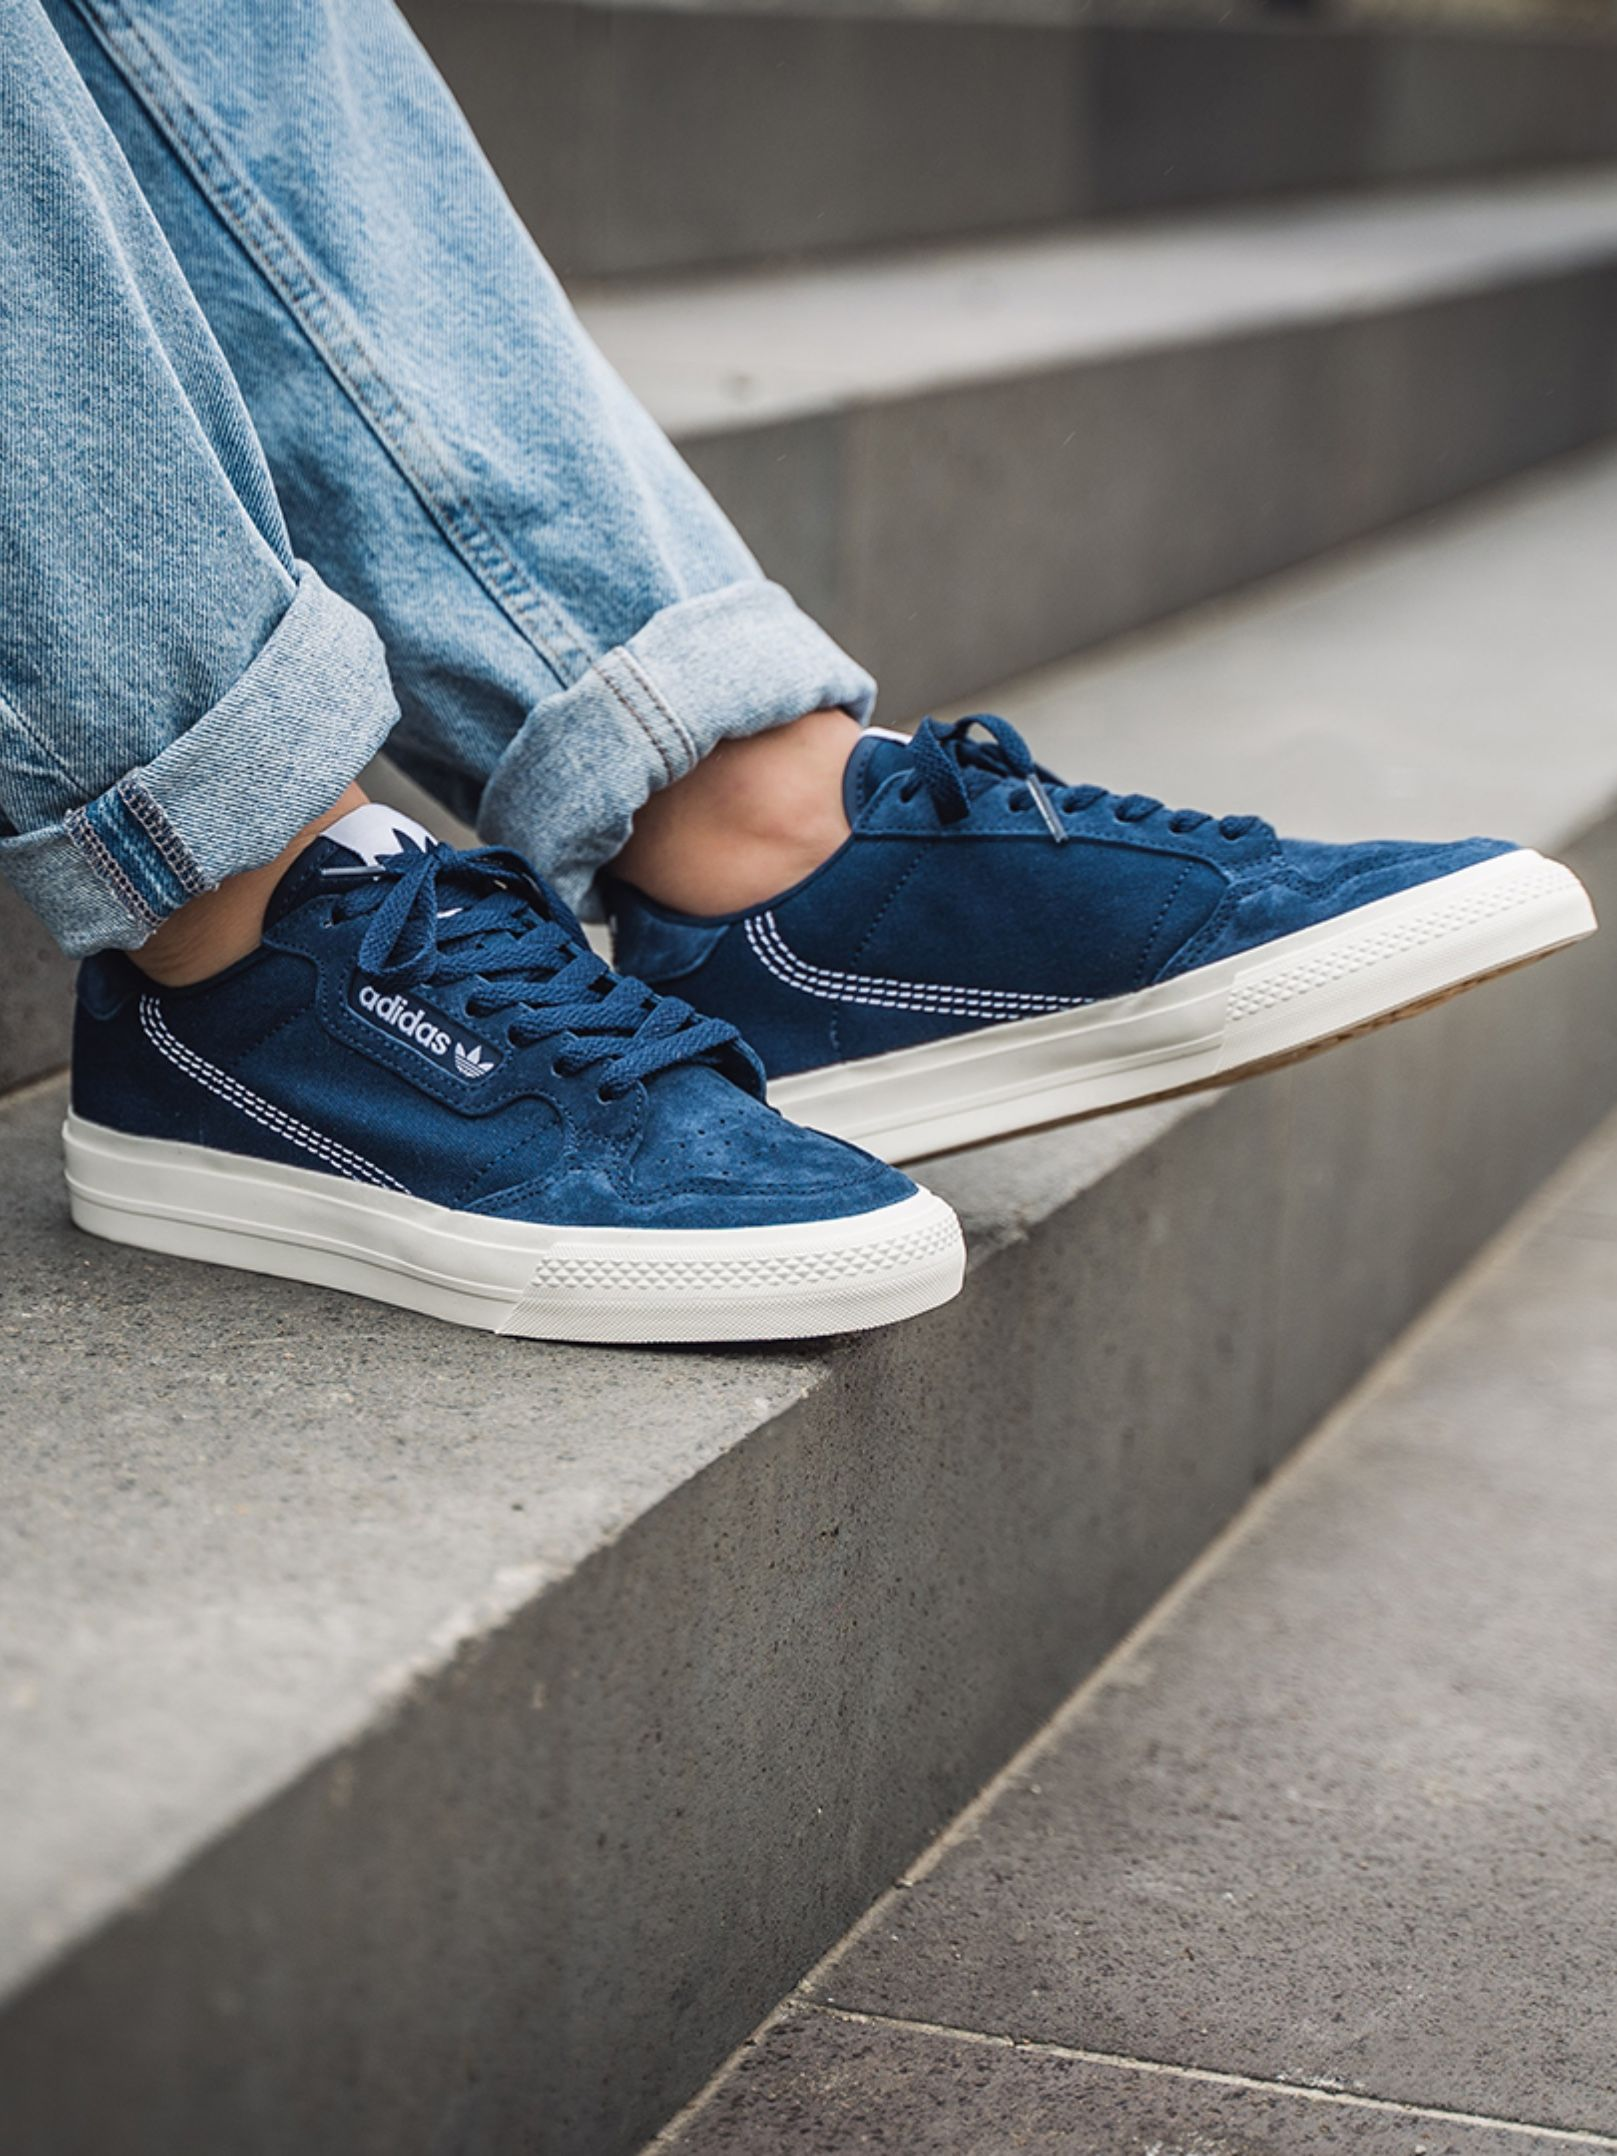 adidas Continental Vulc (navy) in 2020 | Continental